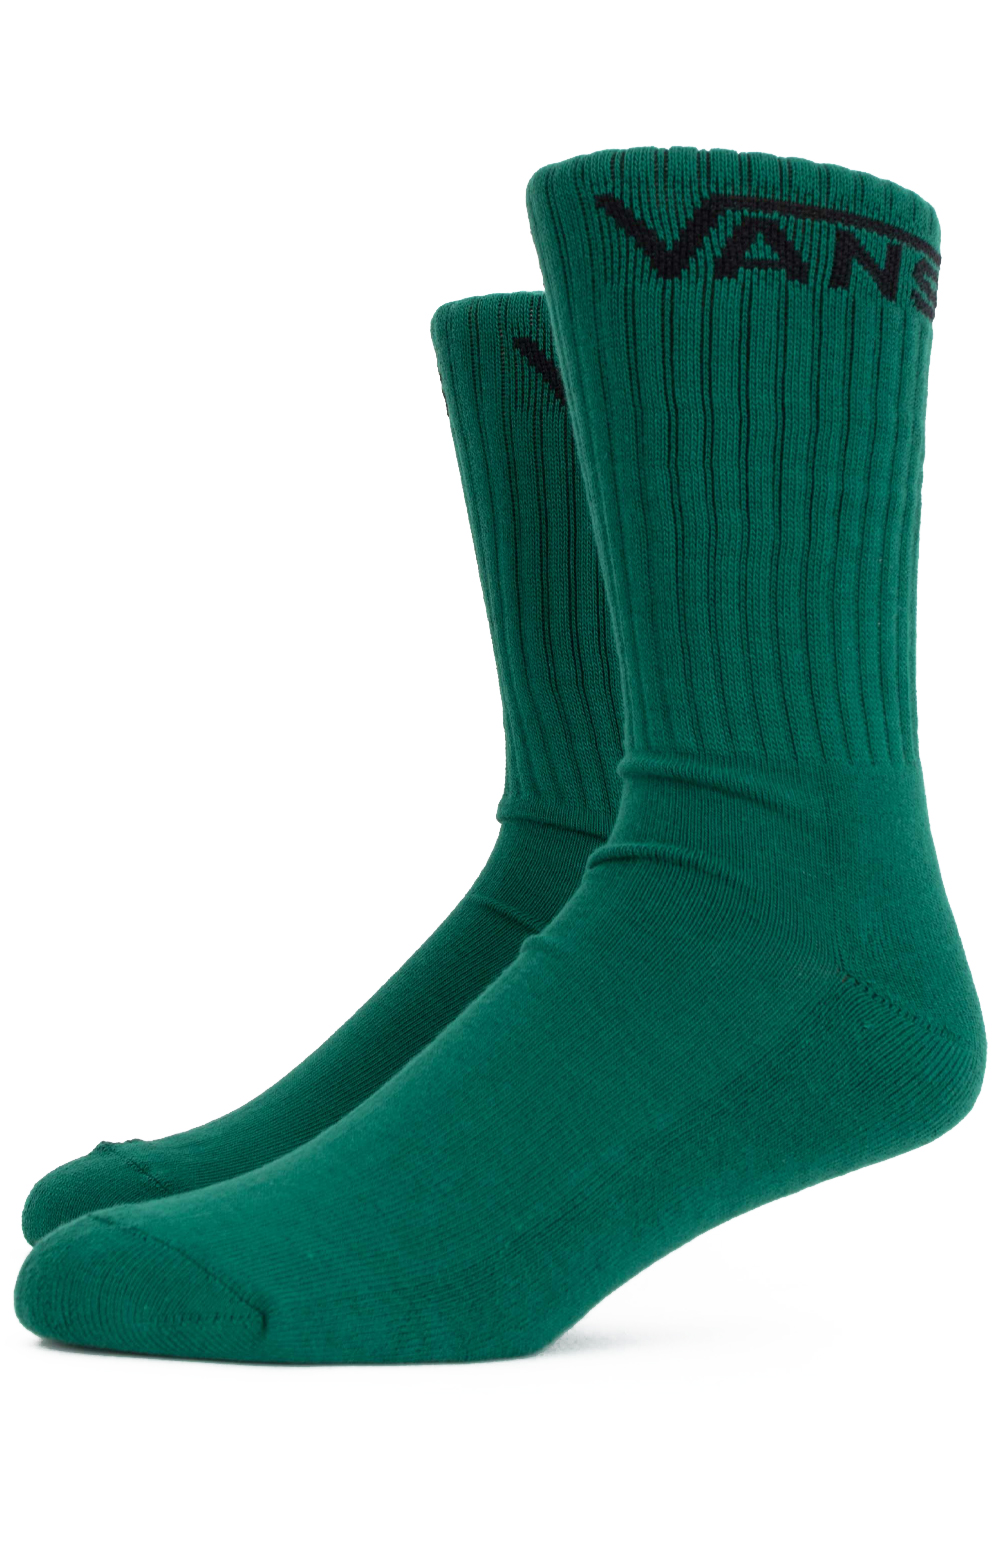 Classic Crew Socks 3 Pack - Evergreen